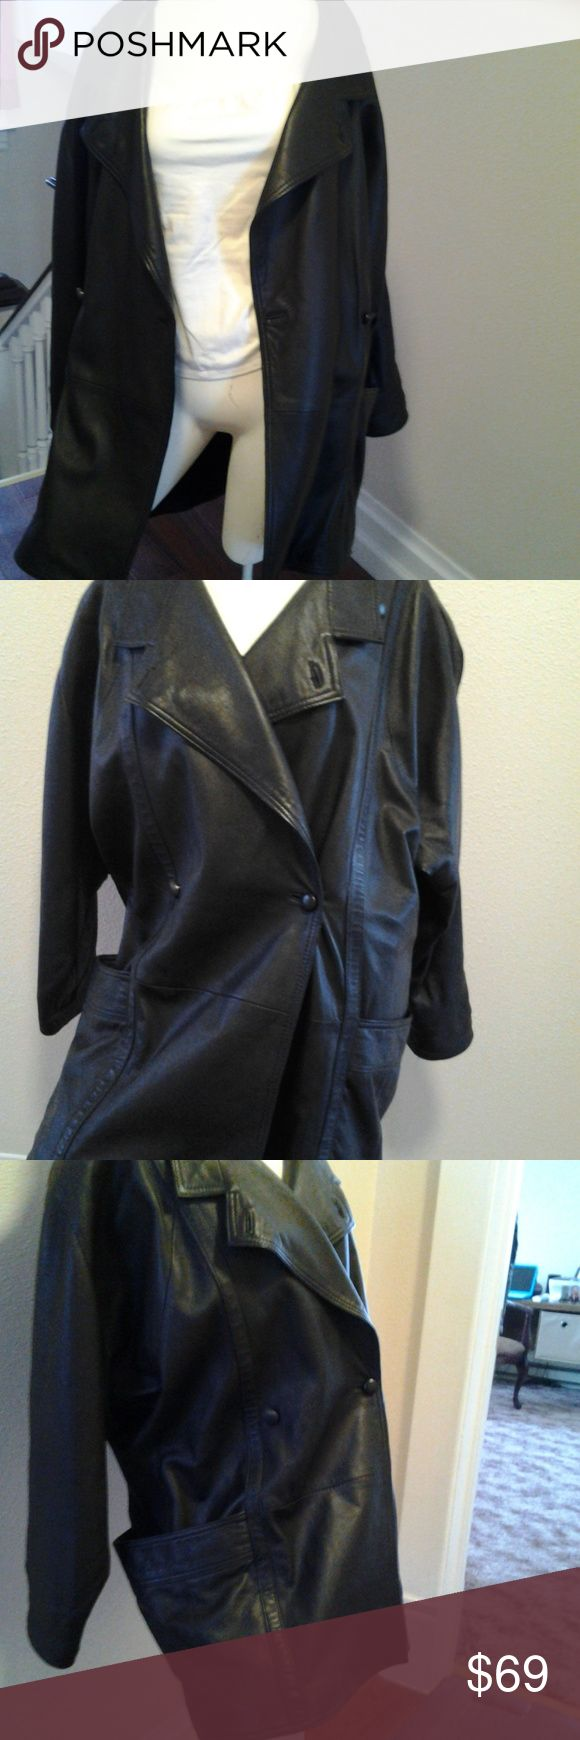 YESSICA Genuine Leather Black 3/4 Coat/Jacket,L Great long